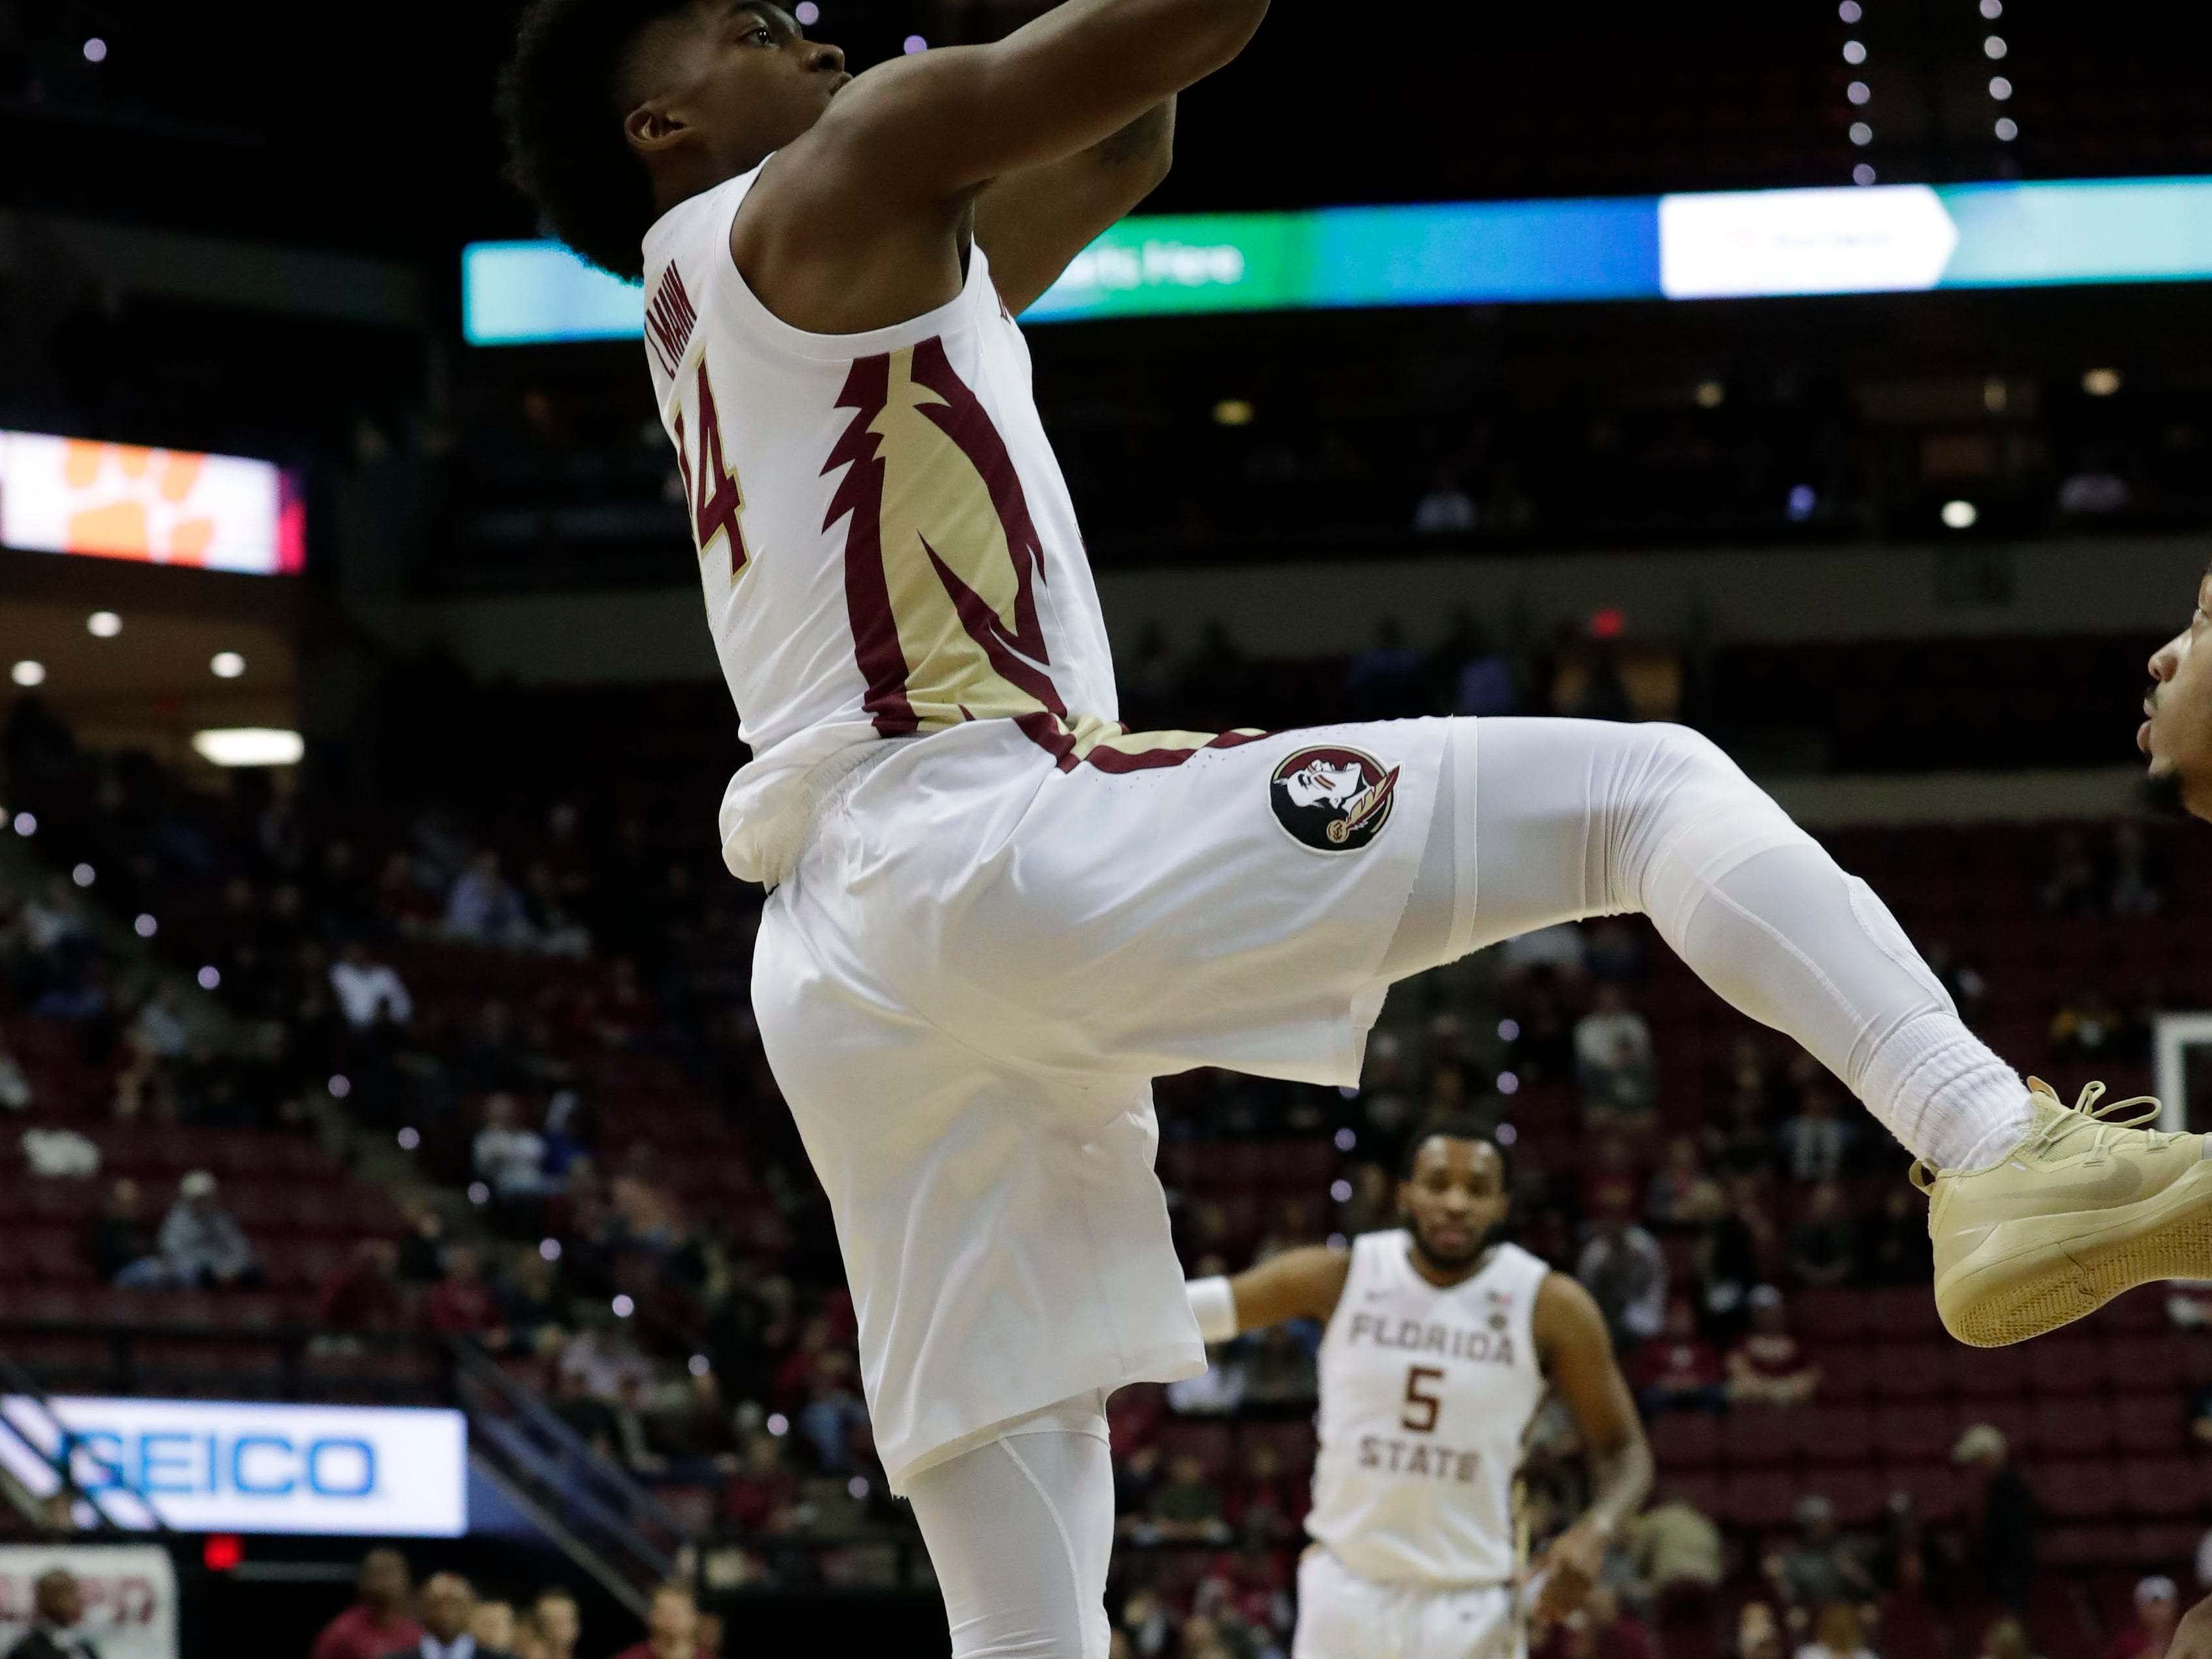 Florida State Seminoles guard Terance Mann (14) shoots for two. The Florida State Seminoles face off against the Clemson Tigers at the Tucker Civic Center, Tuesday, Jan. 22, 2019.